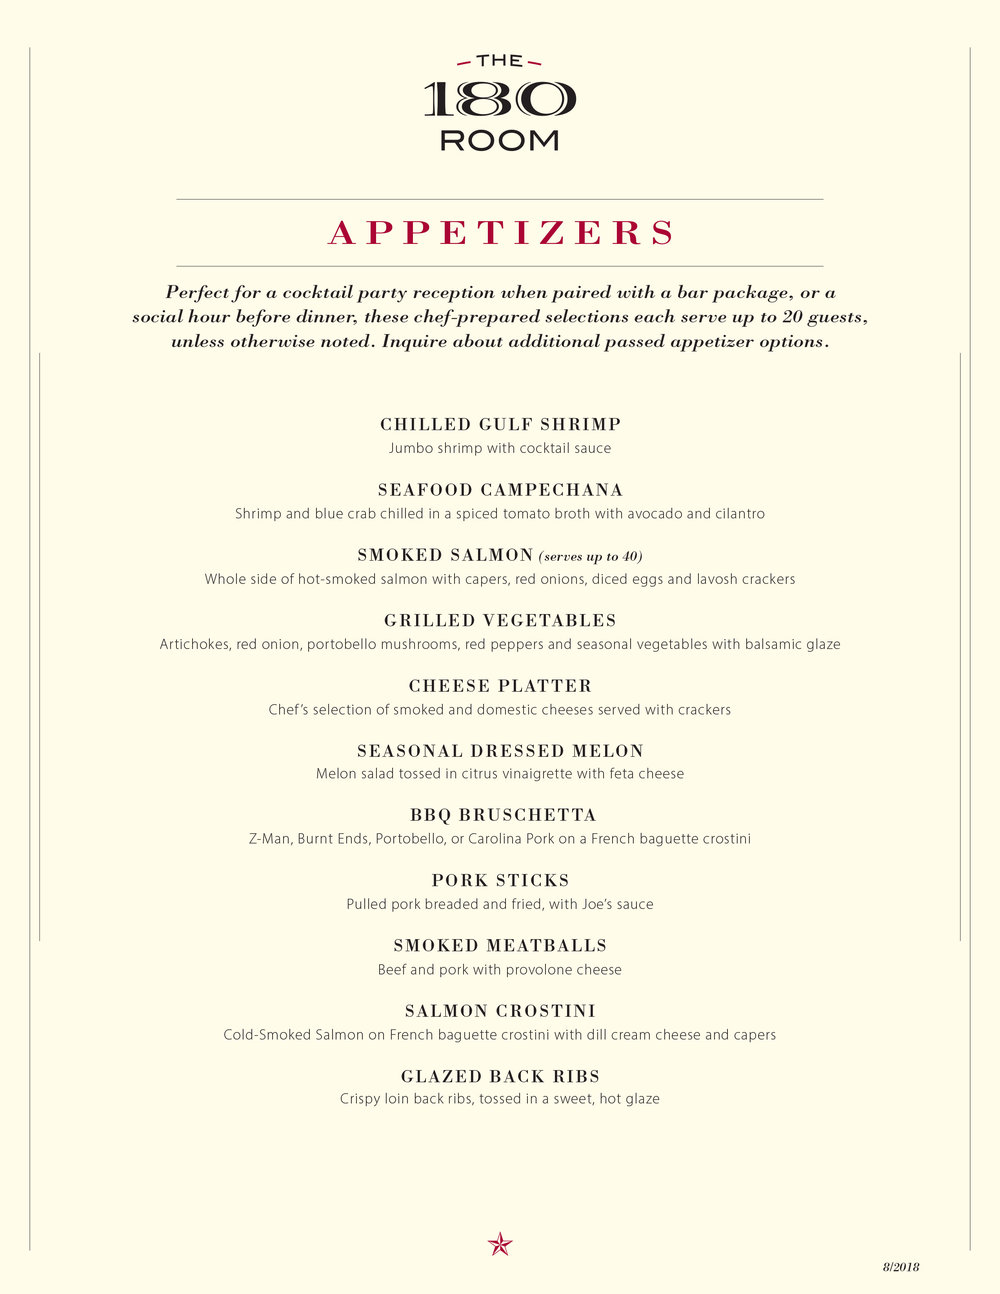 To download a PDF of the appetizer menu, click here.